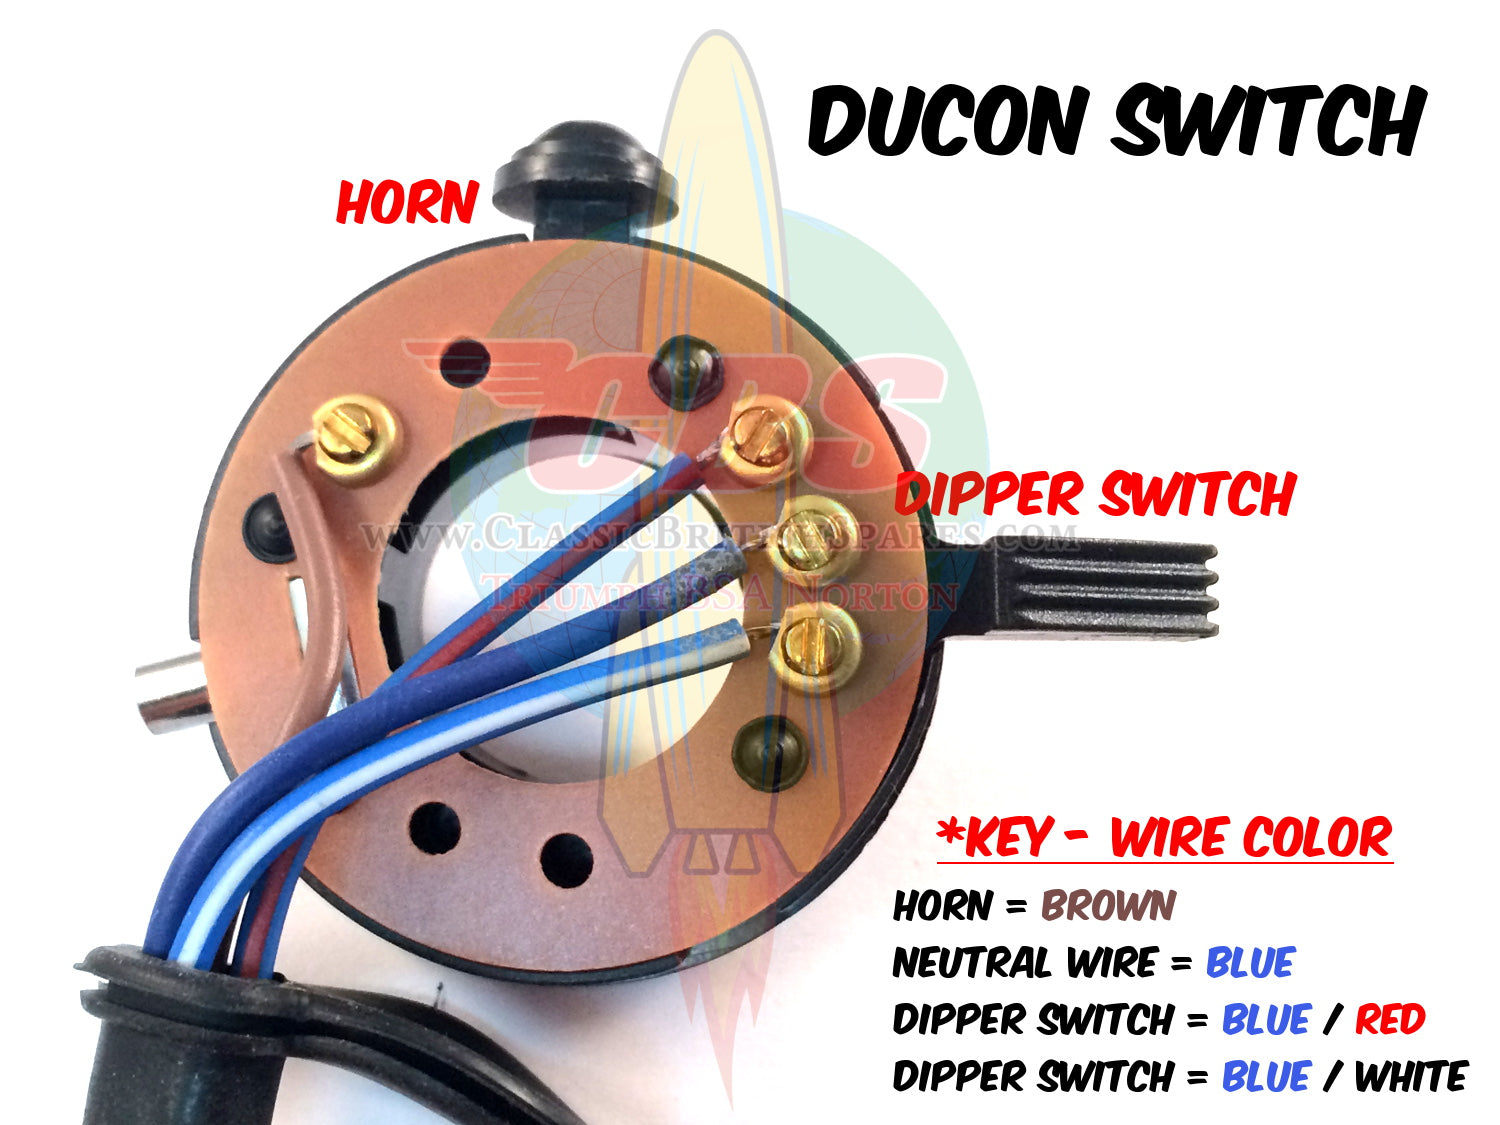 Wipac Ducon Tricon Switch Wiring Bsa Diagrams Diagram